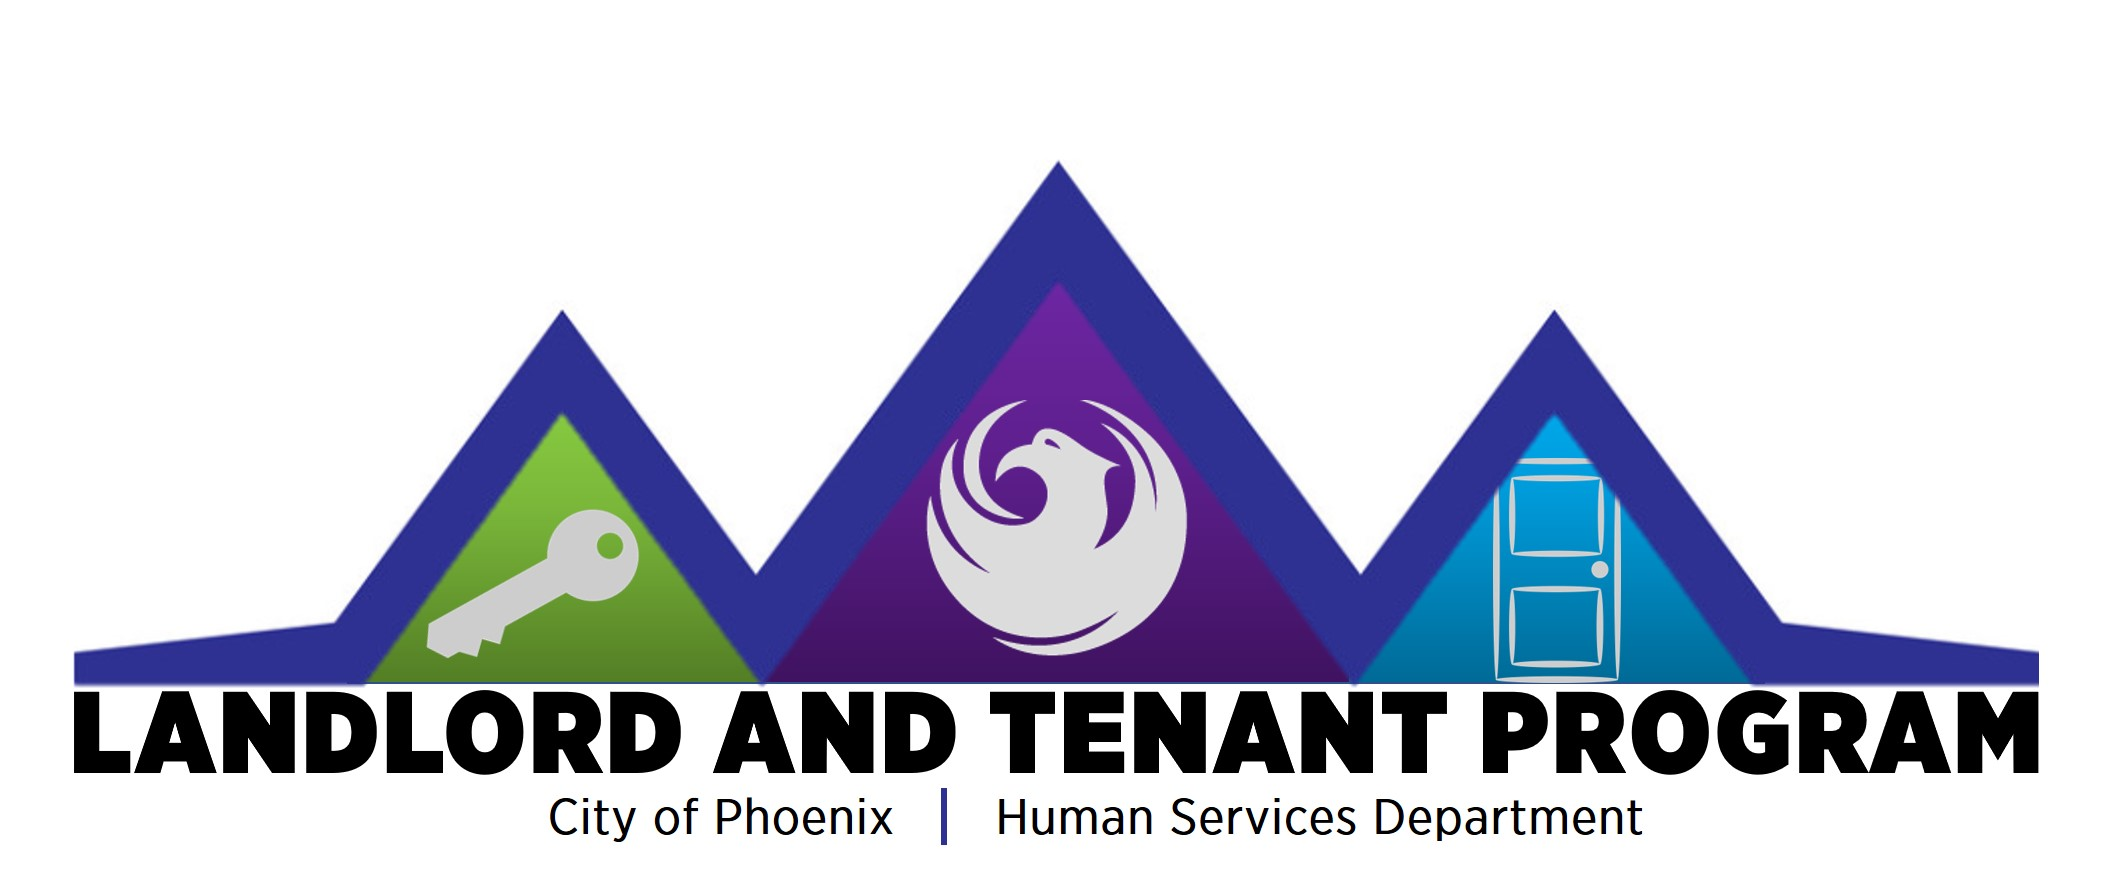 Landlord tenant program logo